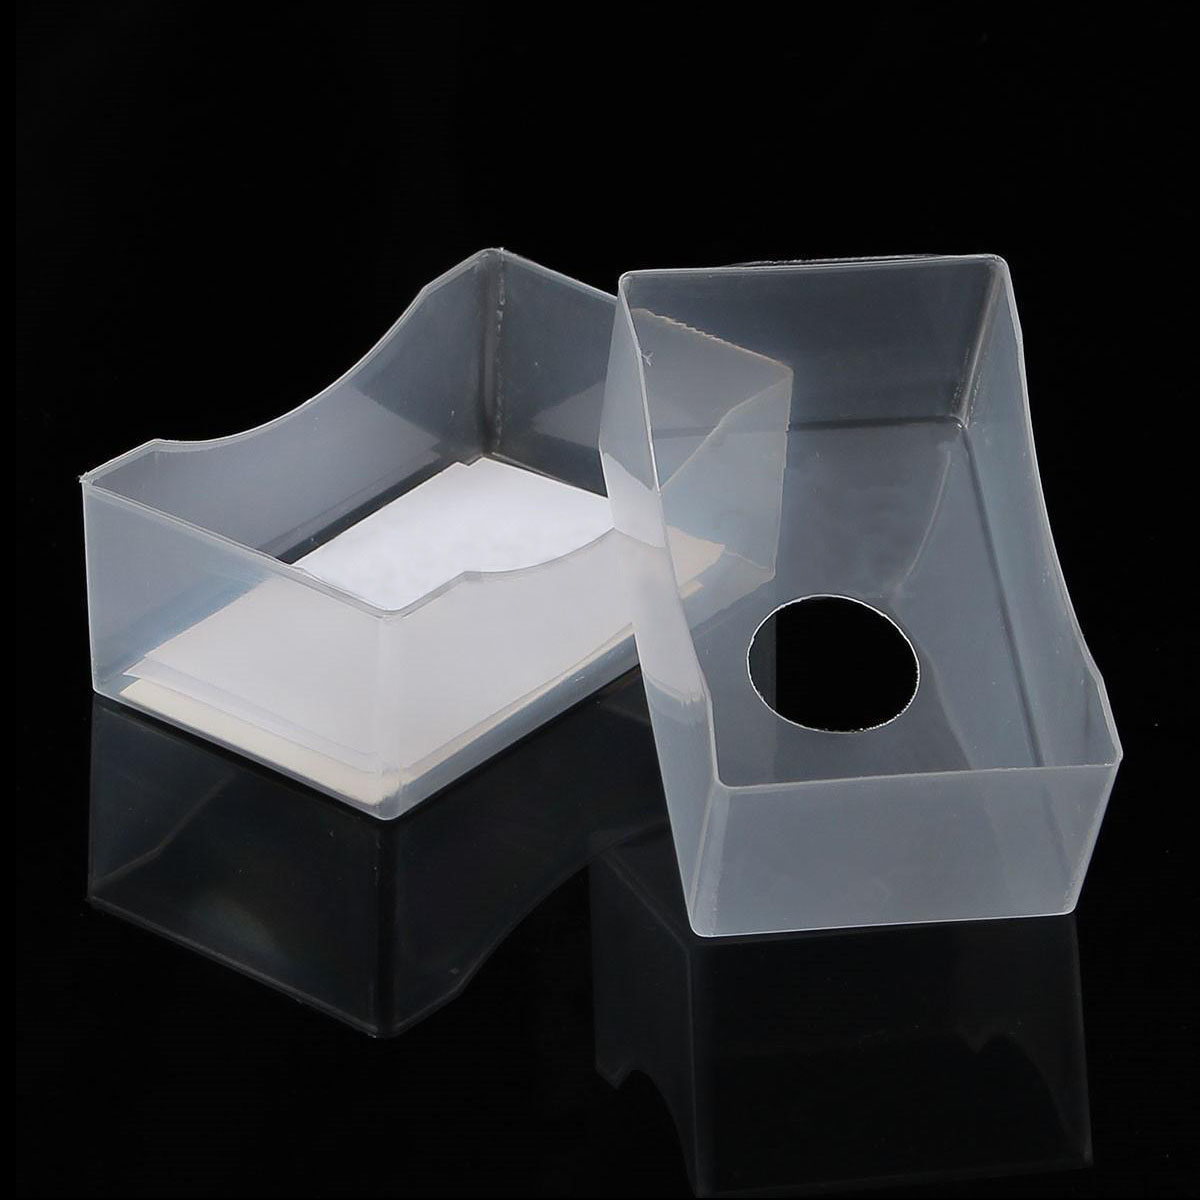 10 x business card box plastic holders clear craft beads container 10 x business card box plastic holders clear craft beads container storage boxes white in business cards from office school supplies on aliexpress colourmoves